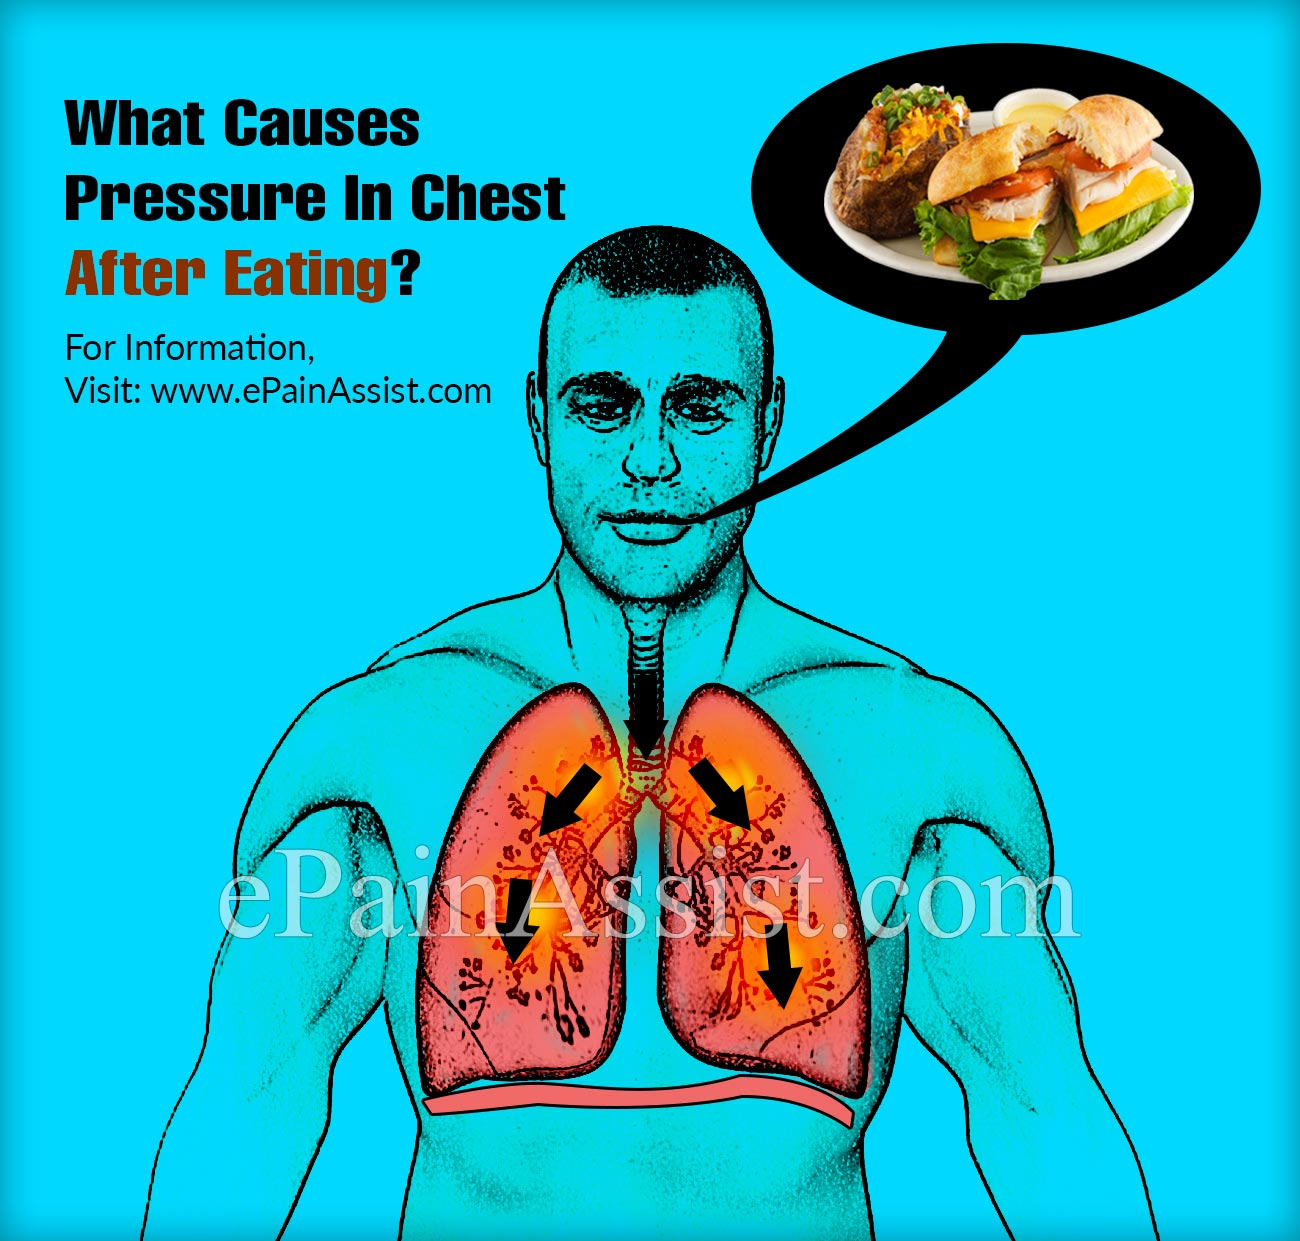 What Causes Pressure In Chest After Eating?